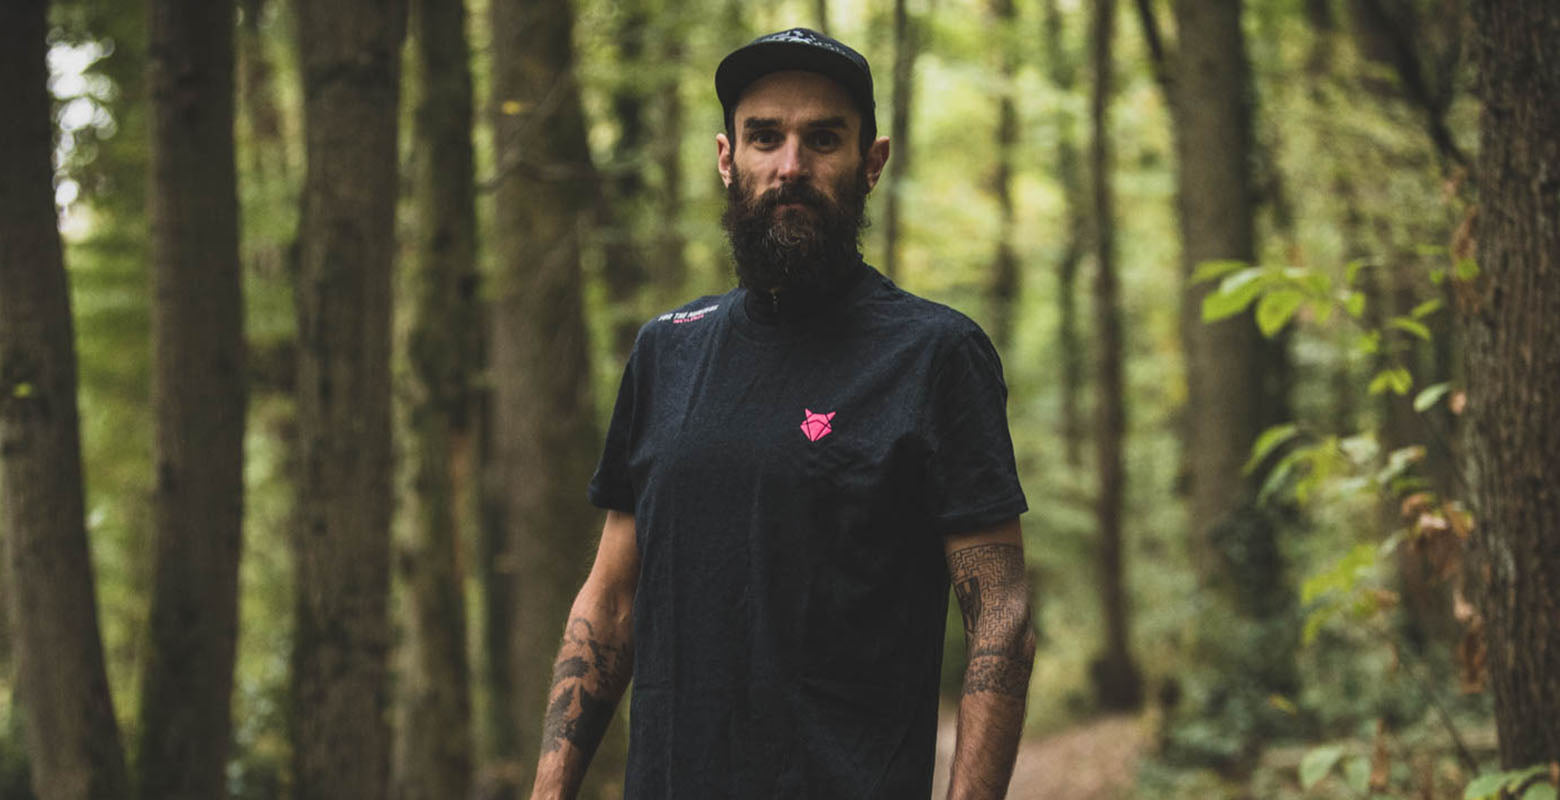 Yoann Stuck with the INCYLENCE Lifestyle T-Shirt